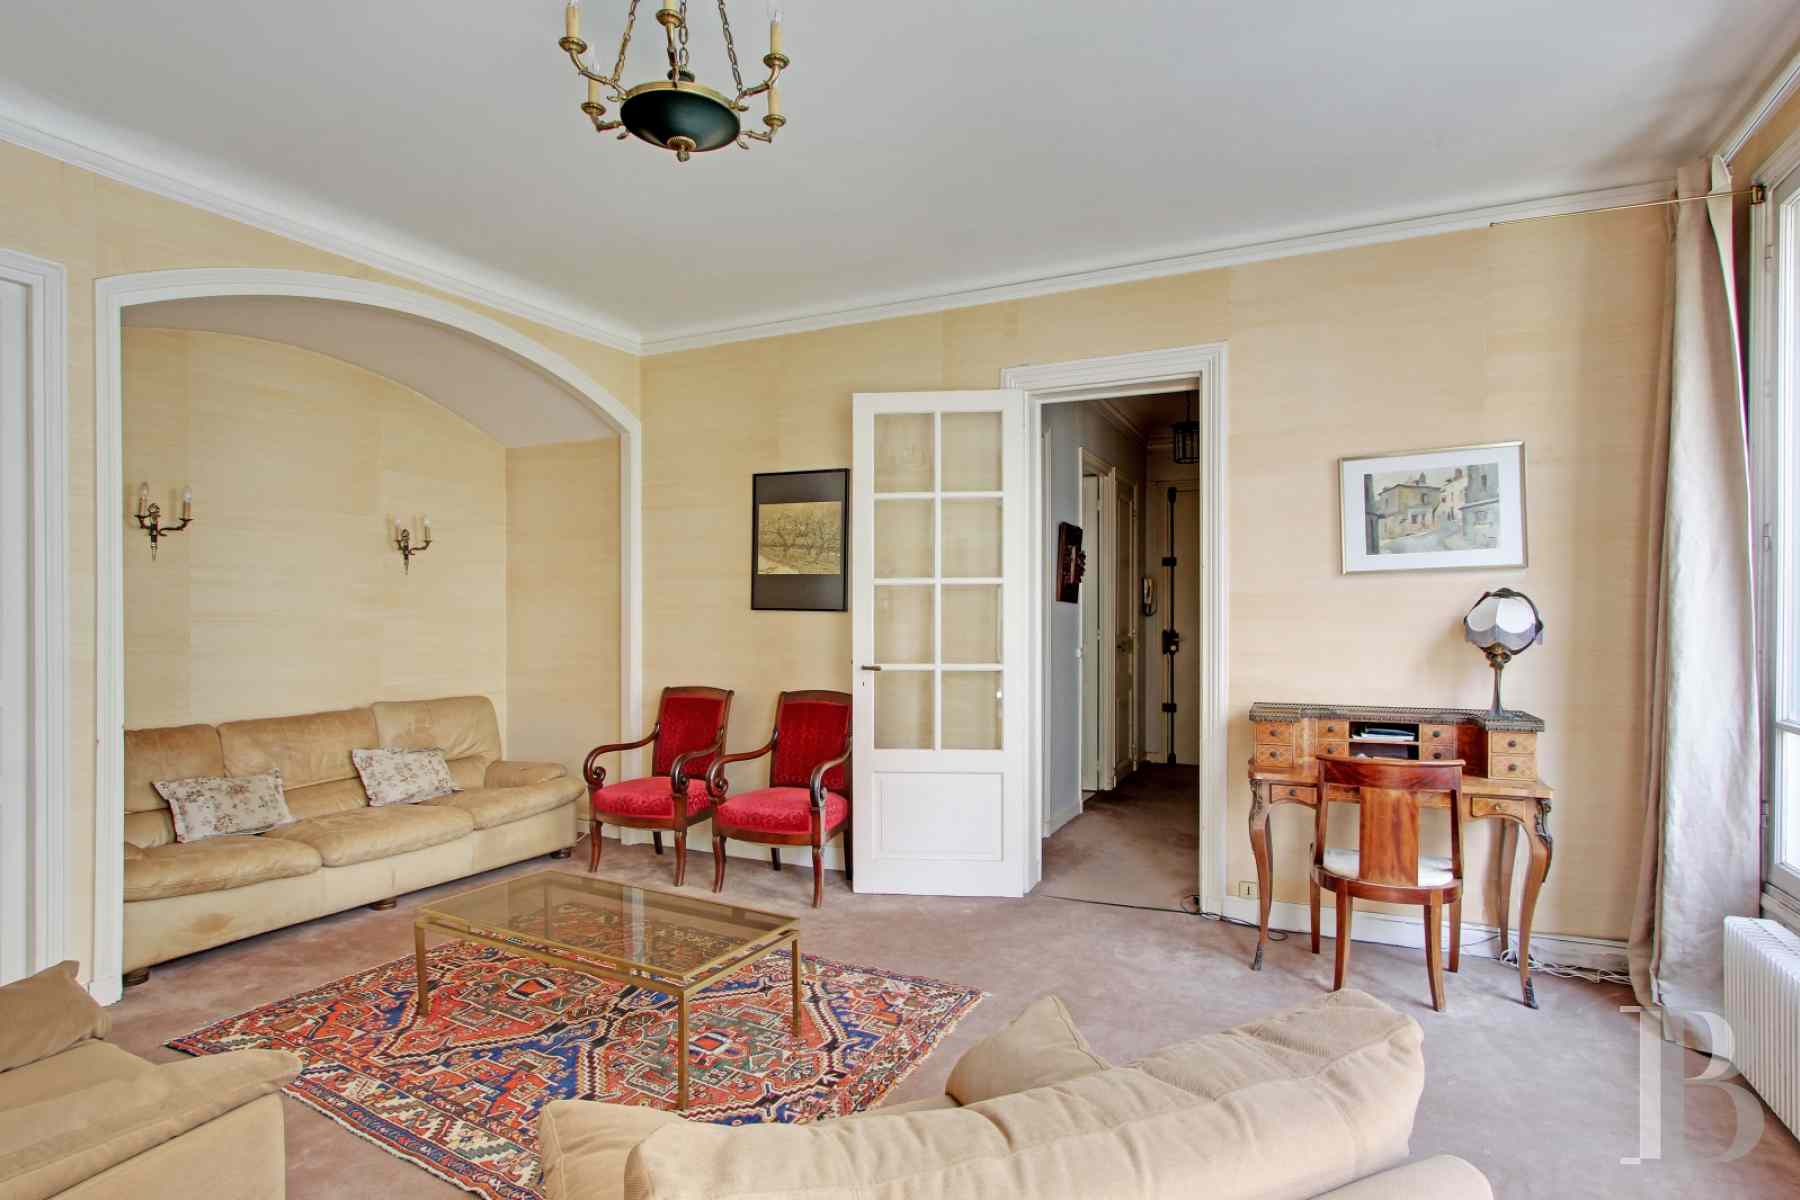 appartments for sale paris 3 bedrooms - 6 zoom